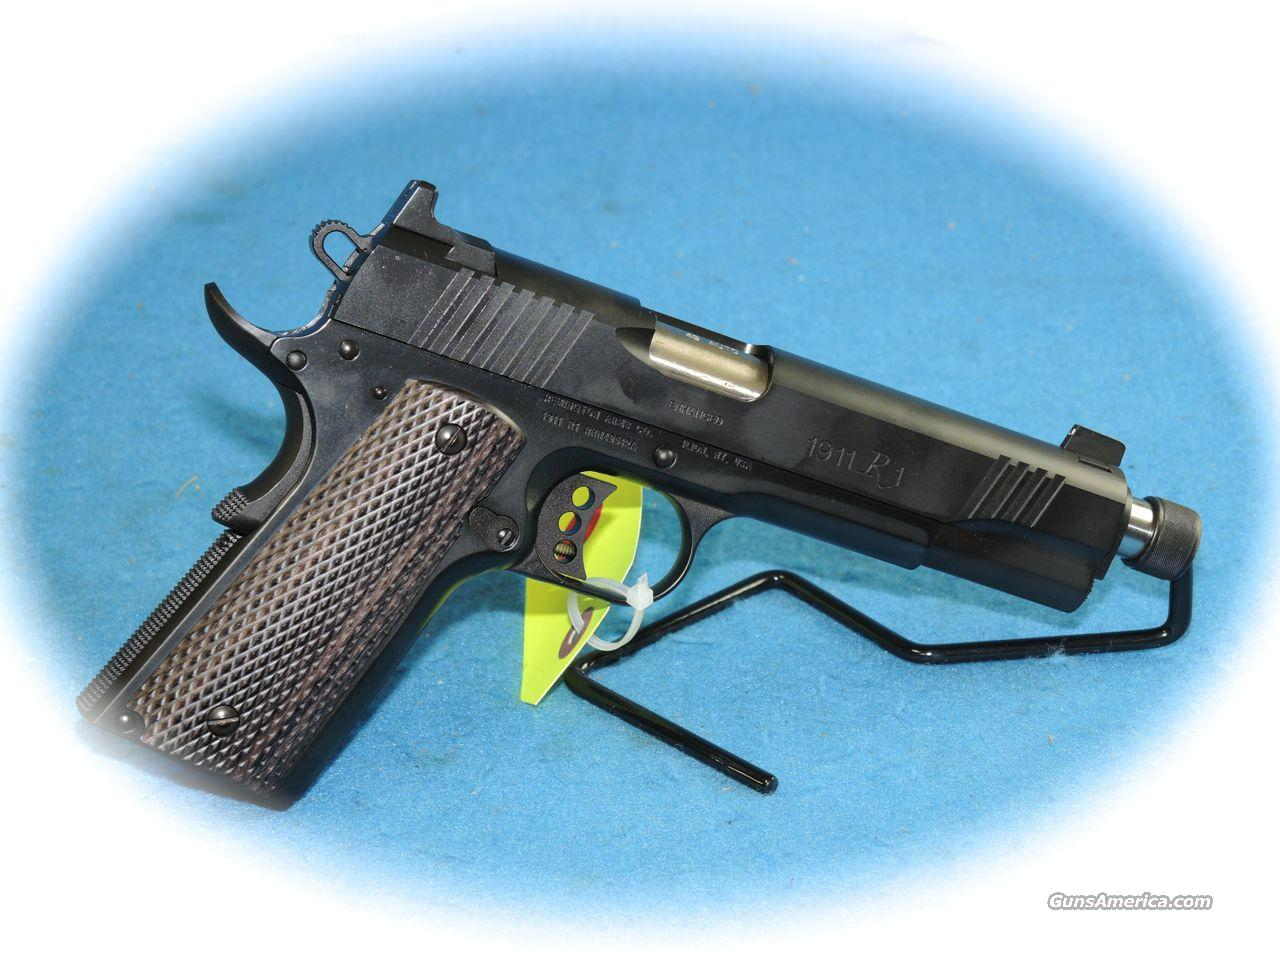 Remington 1911 R1 Enhanced Threaded Barrle .45 ACP Pistol **New**  Guns > Pistols > Remington Pistols - Modern